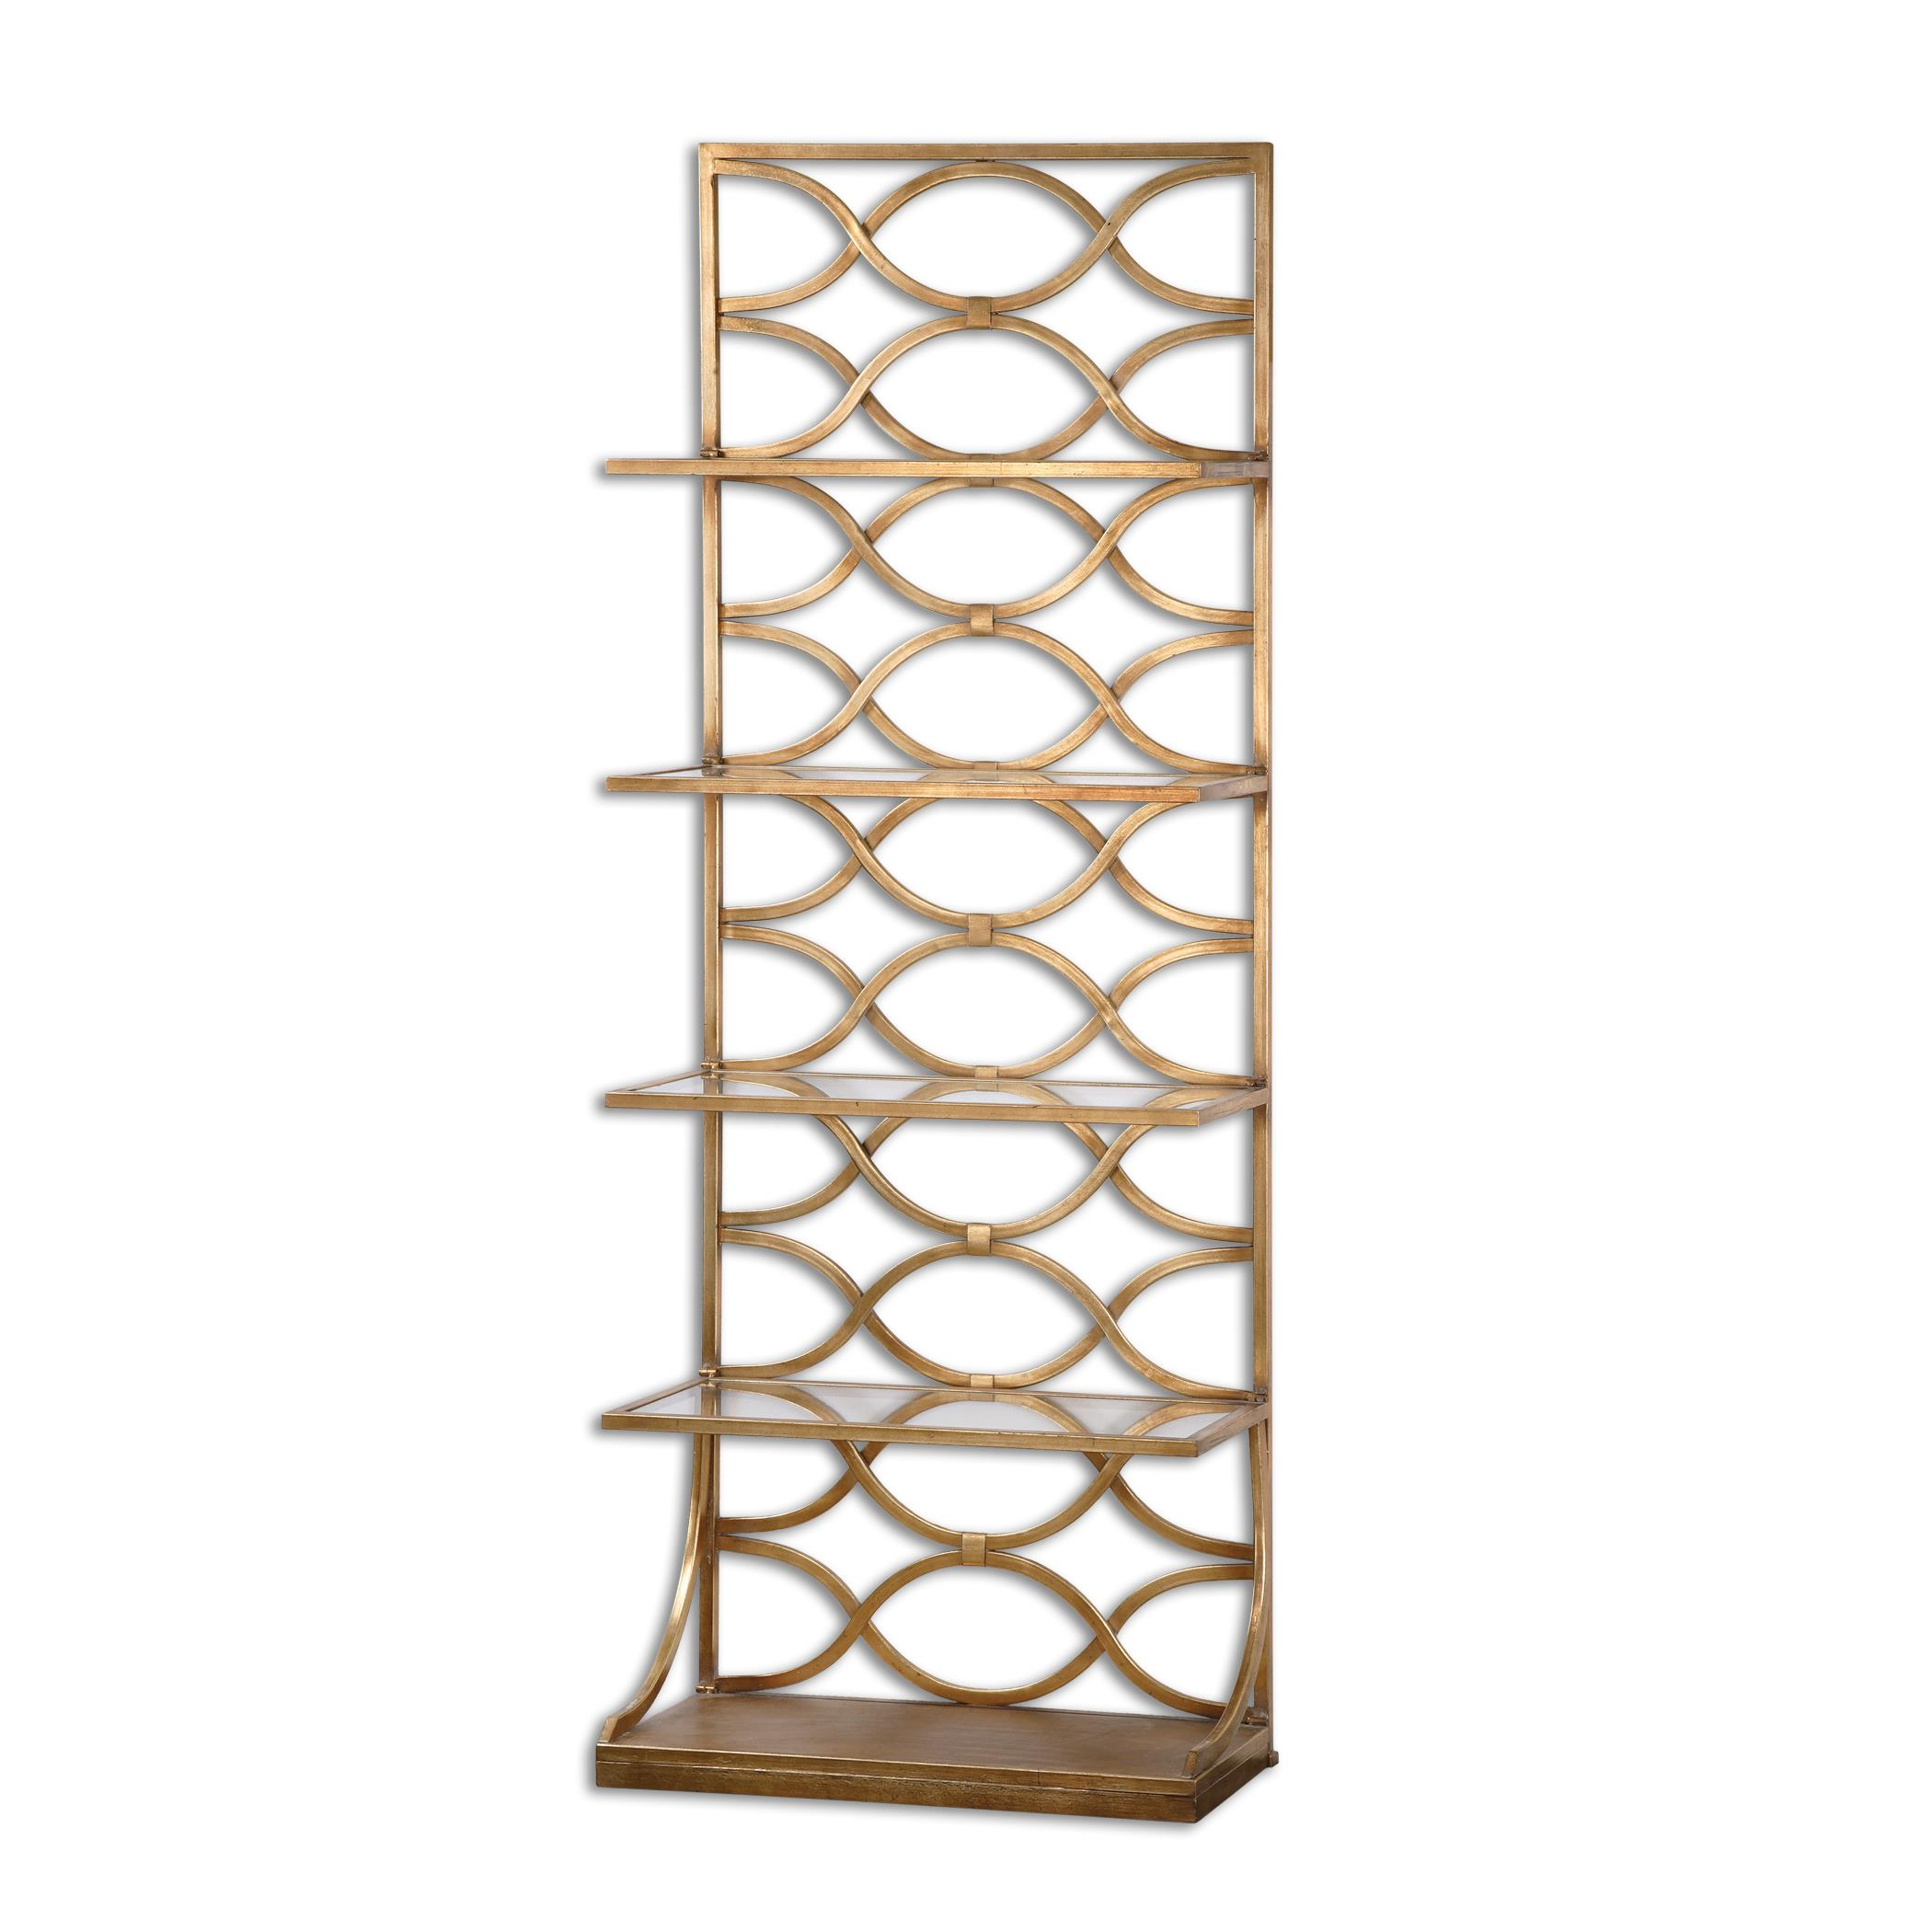 Accent Furniture - Bookcases Lashaya Gold Etagere by Uttermost at Upper Room Home Furnishings